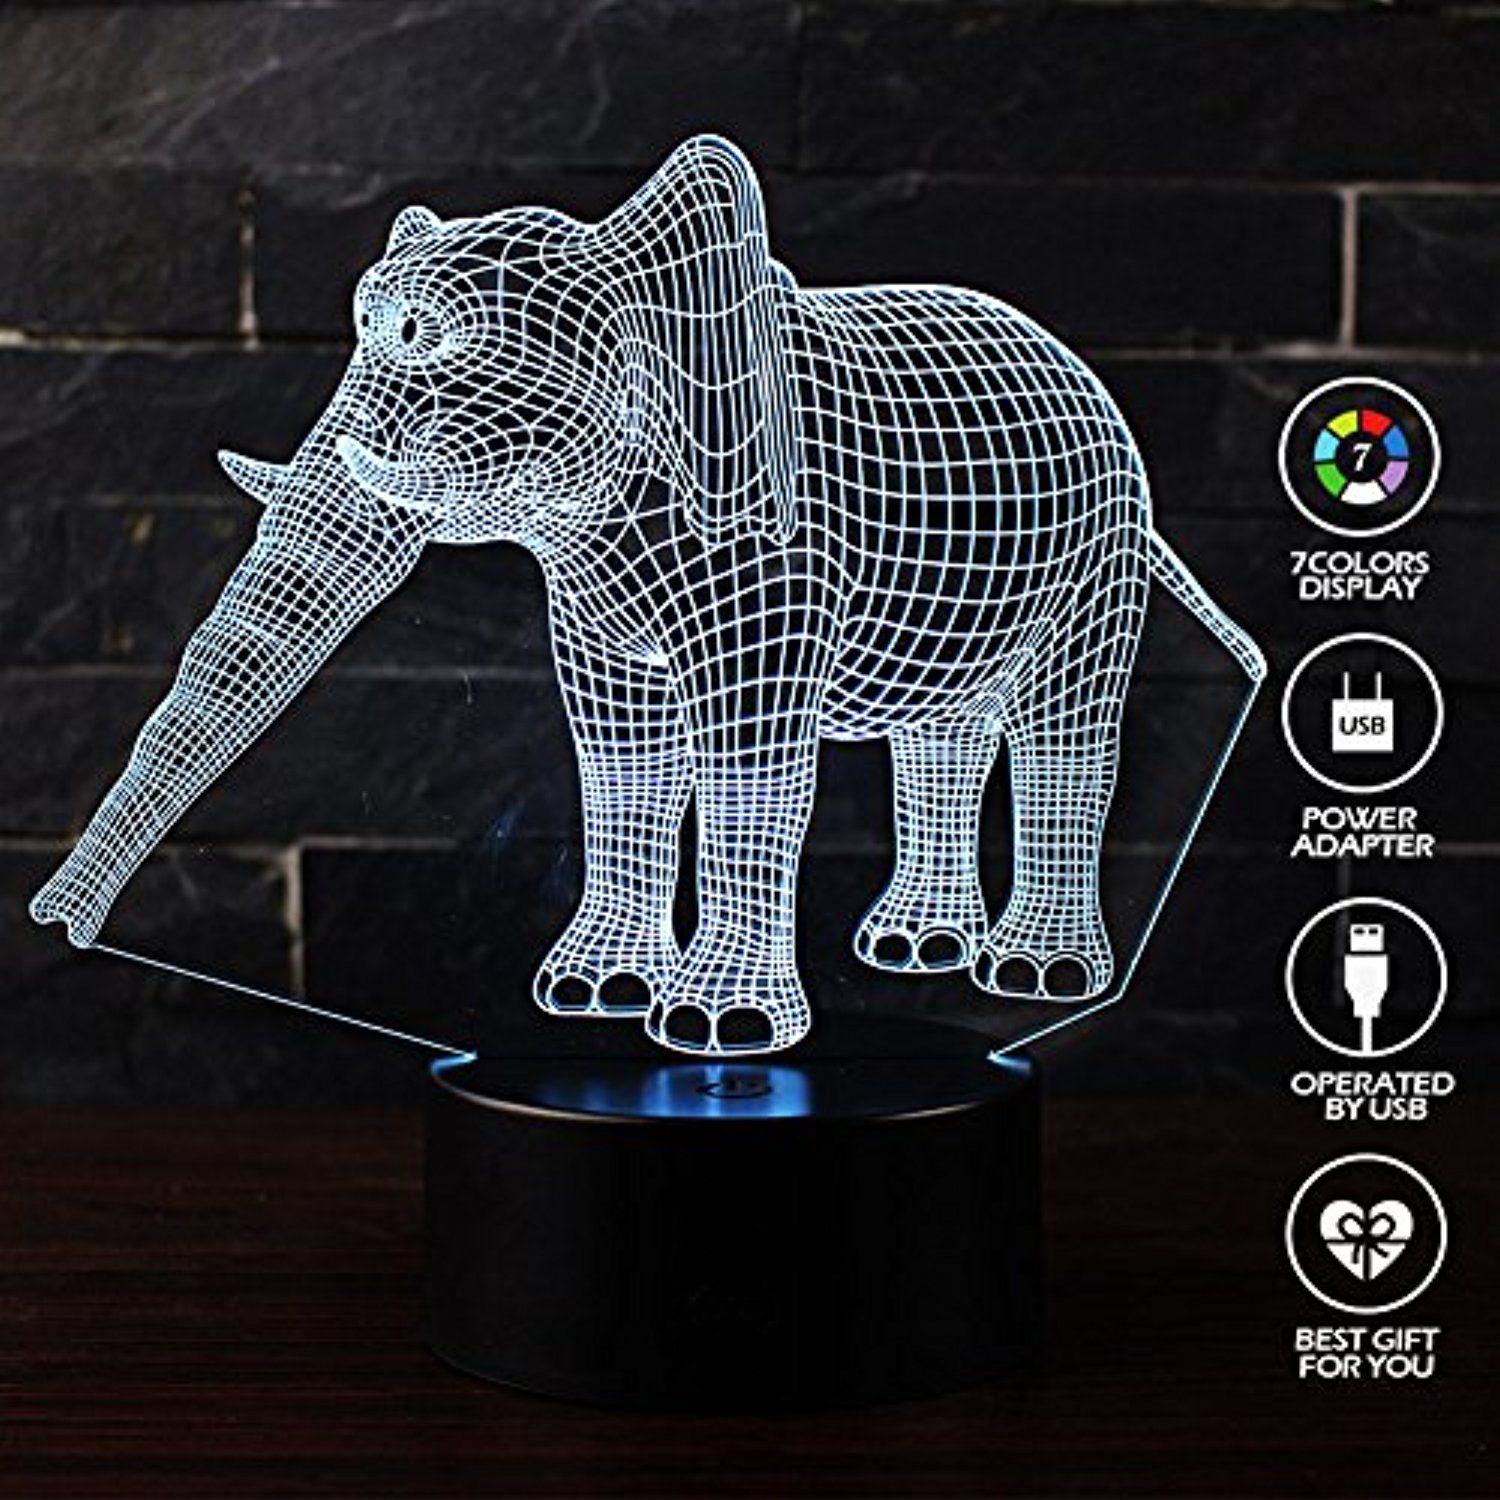 Erhard 3d Night Light Table Desk Led Lamps 7 Colors Change Decor Atmosphere Illusion Lamp With Usb Cable Smart Touch But 3d Night Light Night Light Light Table